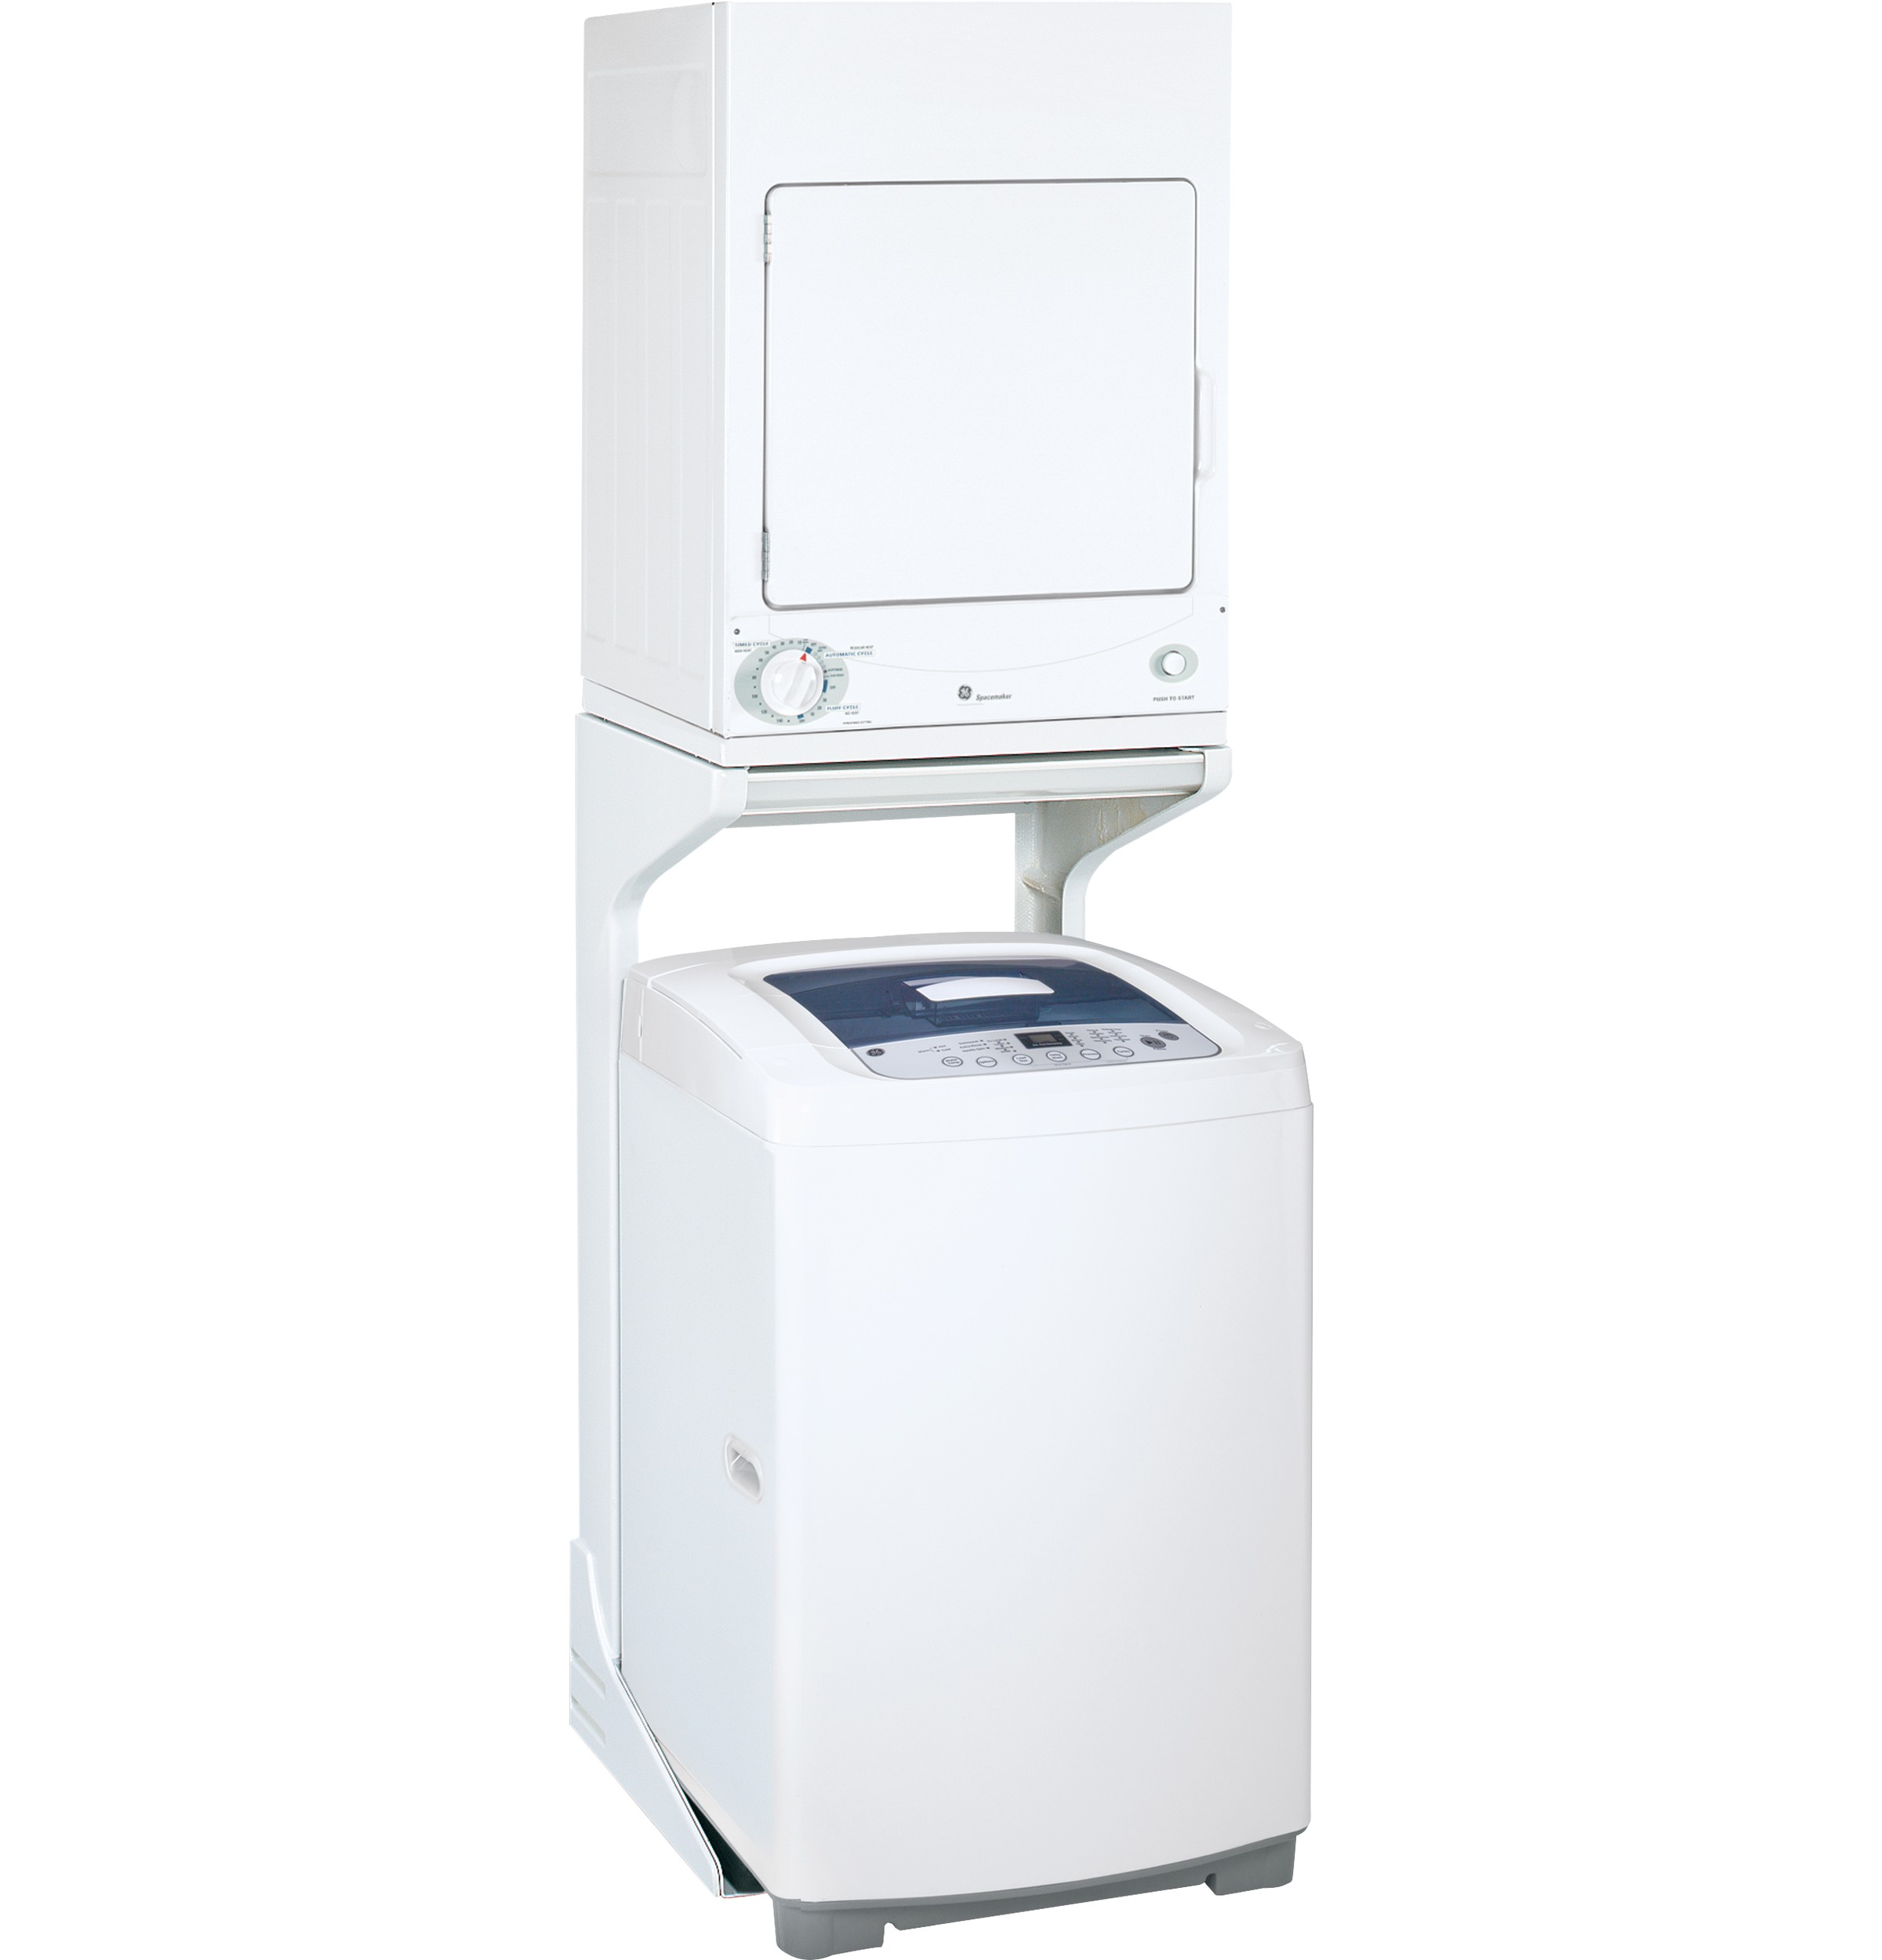 Apartment Washer And Dryer: Apartment Size Washer And Dryer Stackable